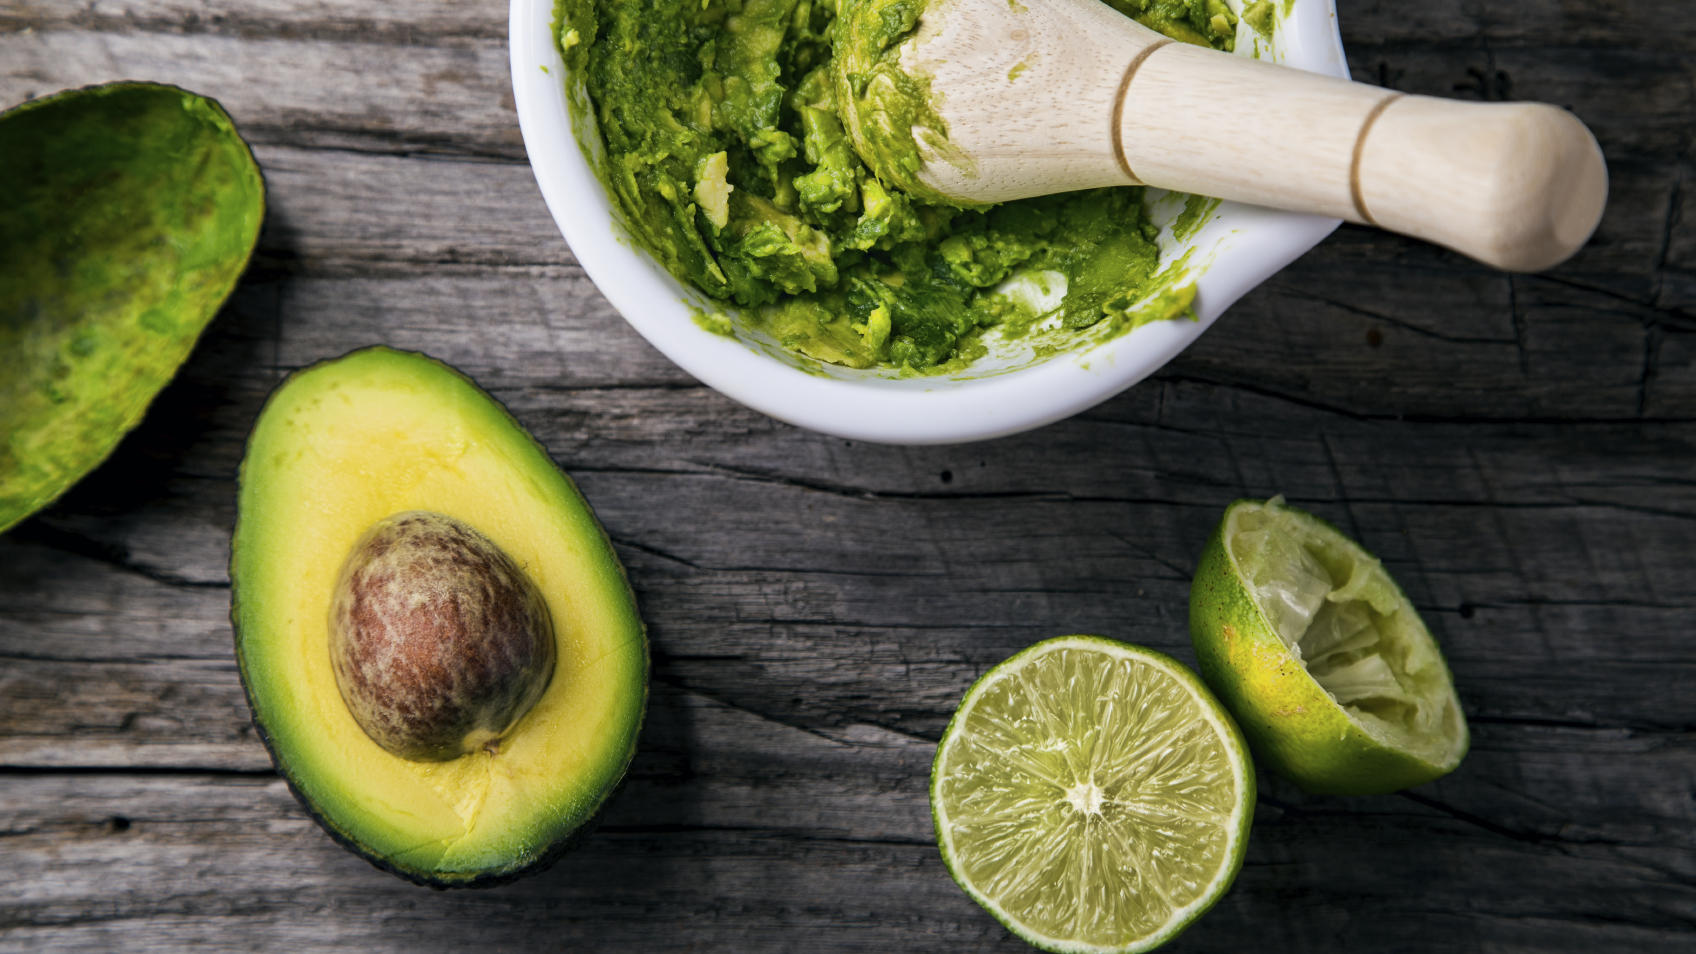 Who doesn't love avocados?